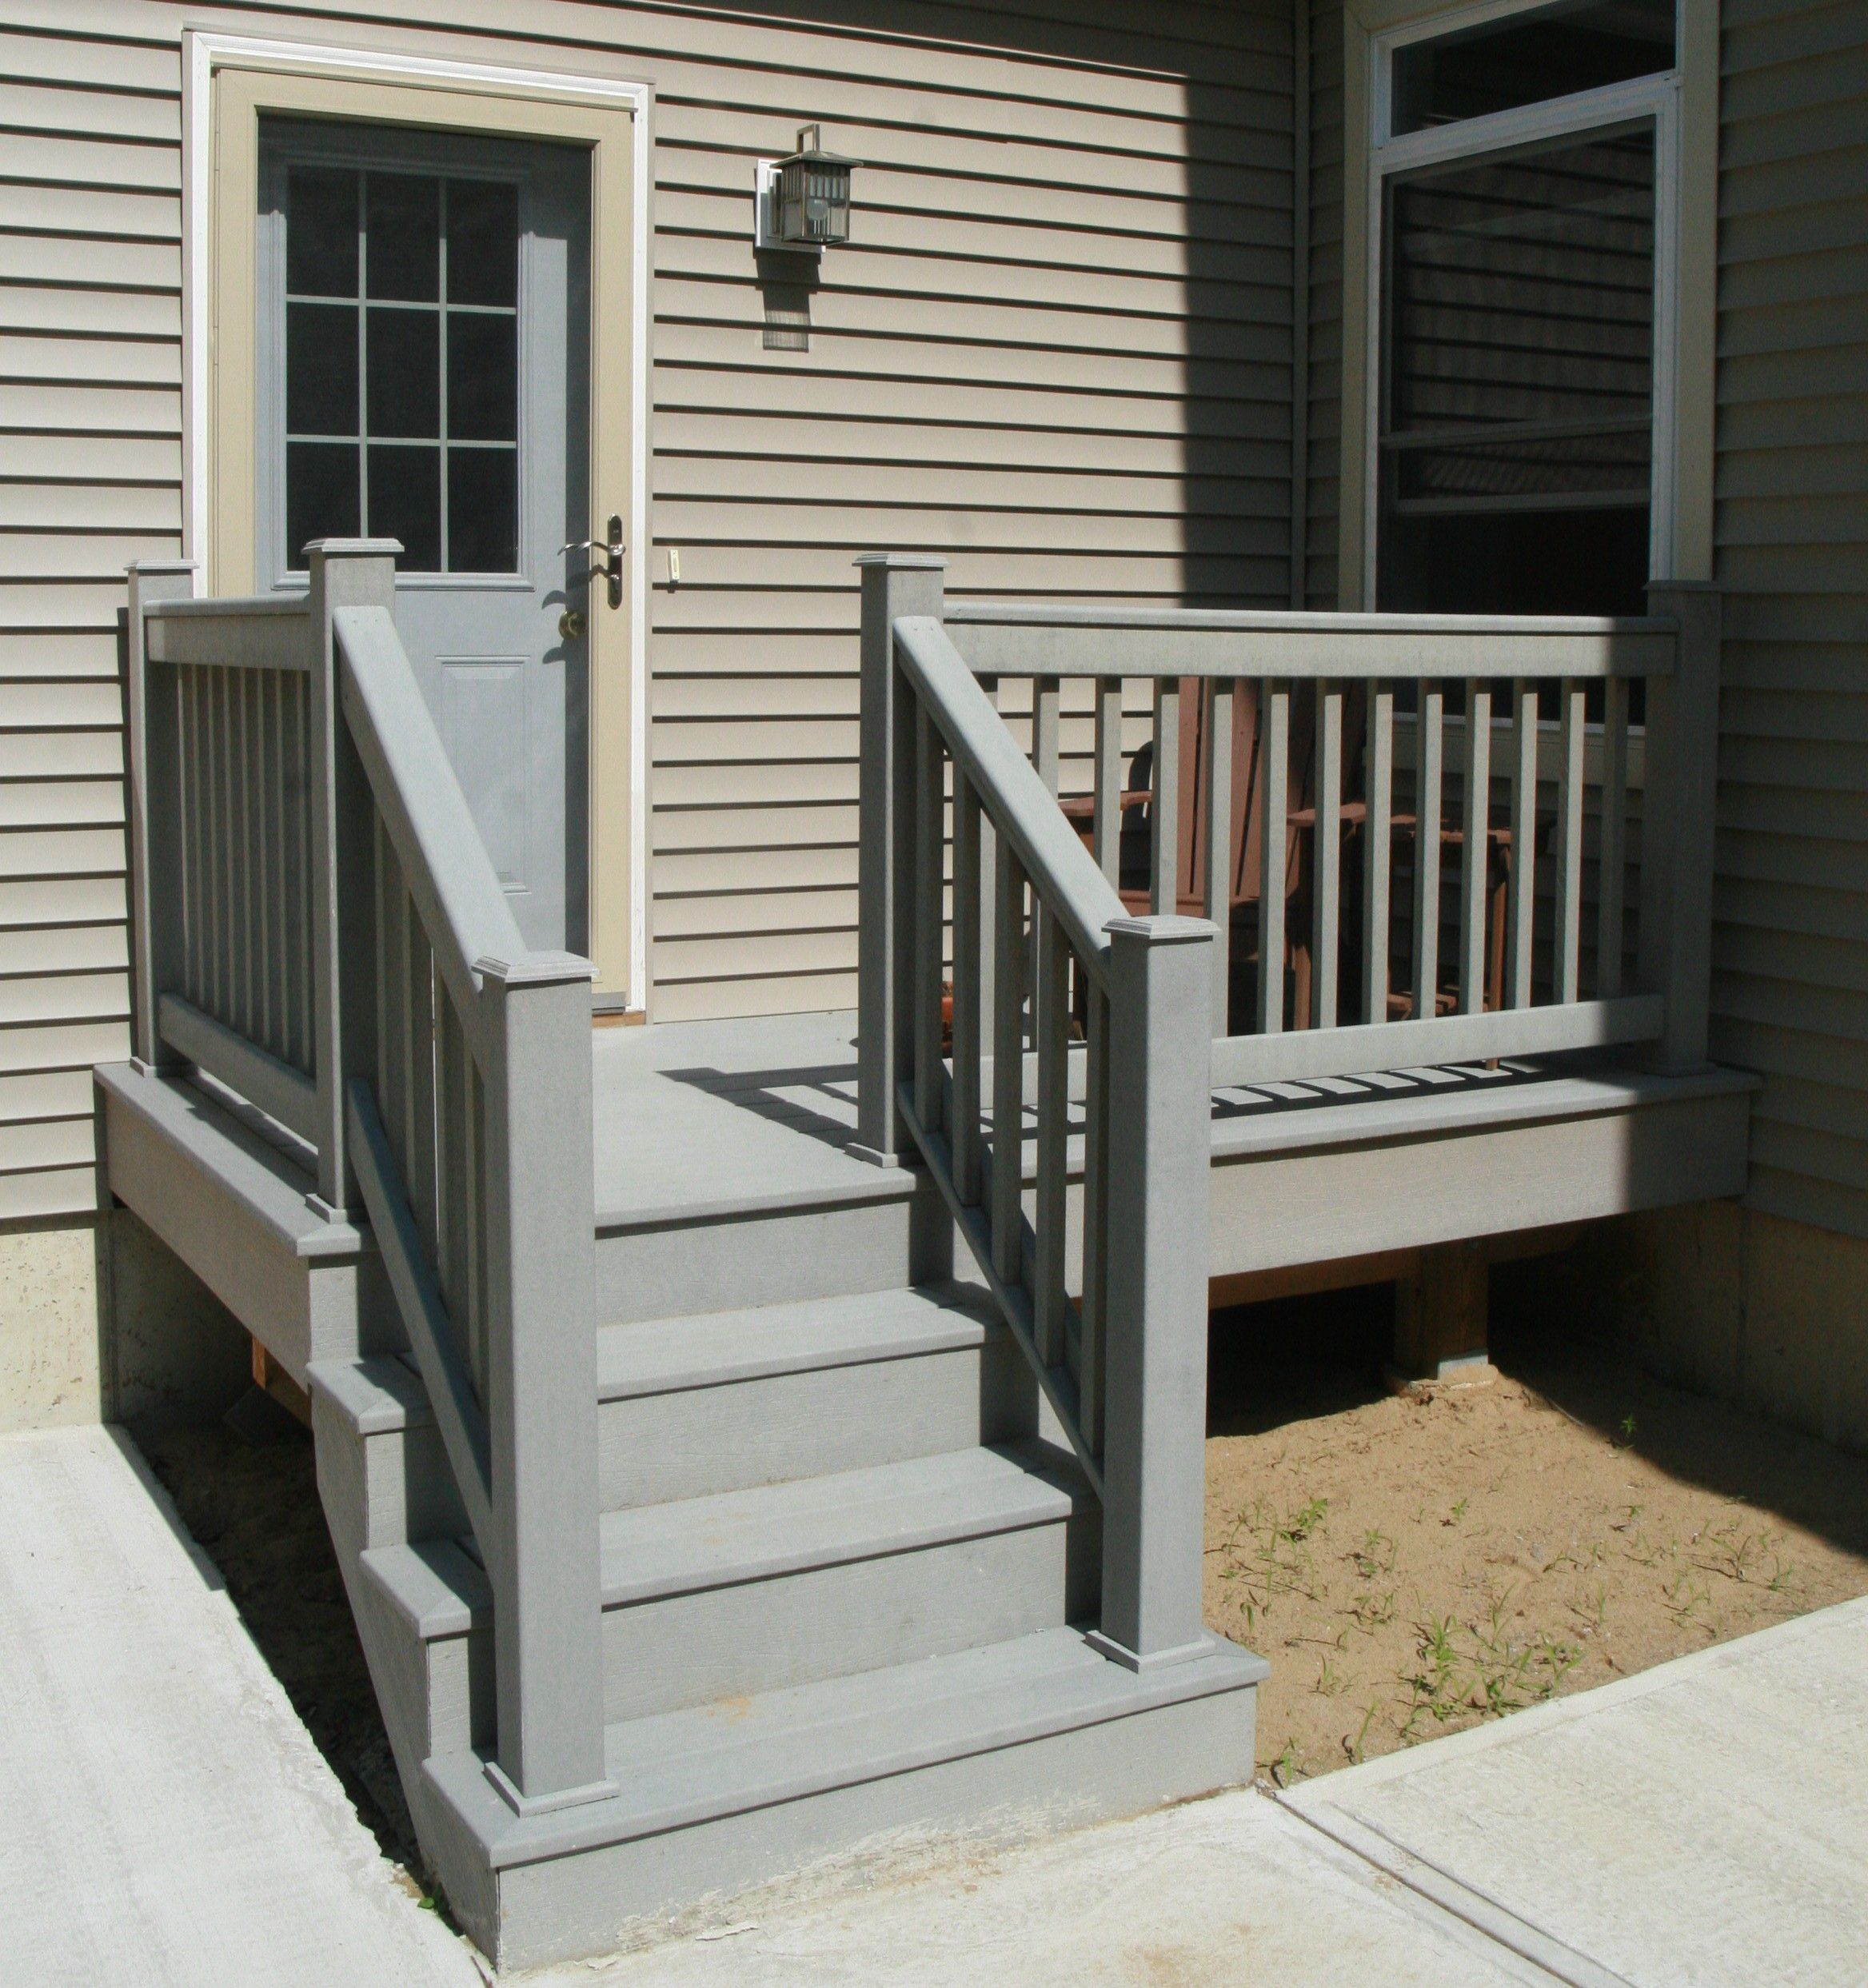 Composite Decking Simple Stairs Exterior Stair Railing | Outdoor Deck Stair Railing